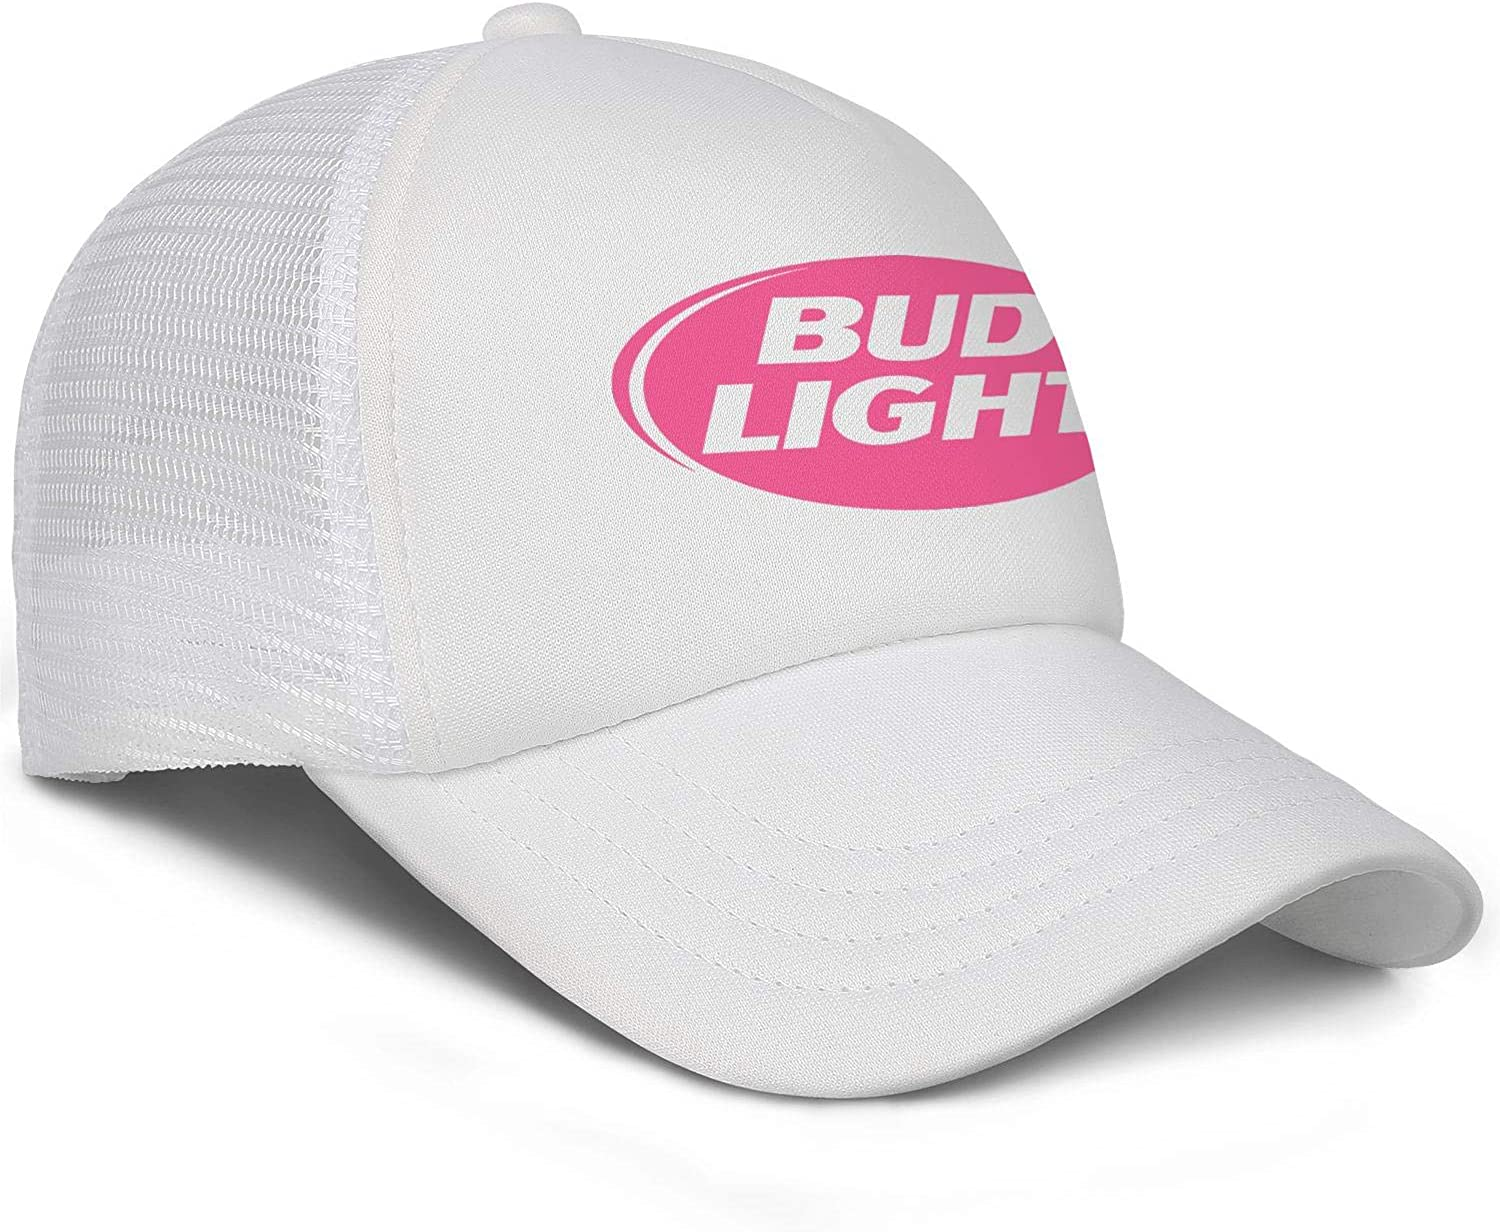 Men Unisex Adjustable Bud-Light-Beer-United-States-Pike-Breast-Cancer-Baseball Cap Sunshade Flat Hats